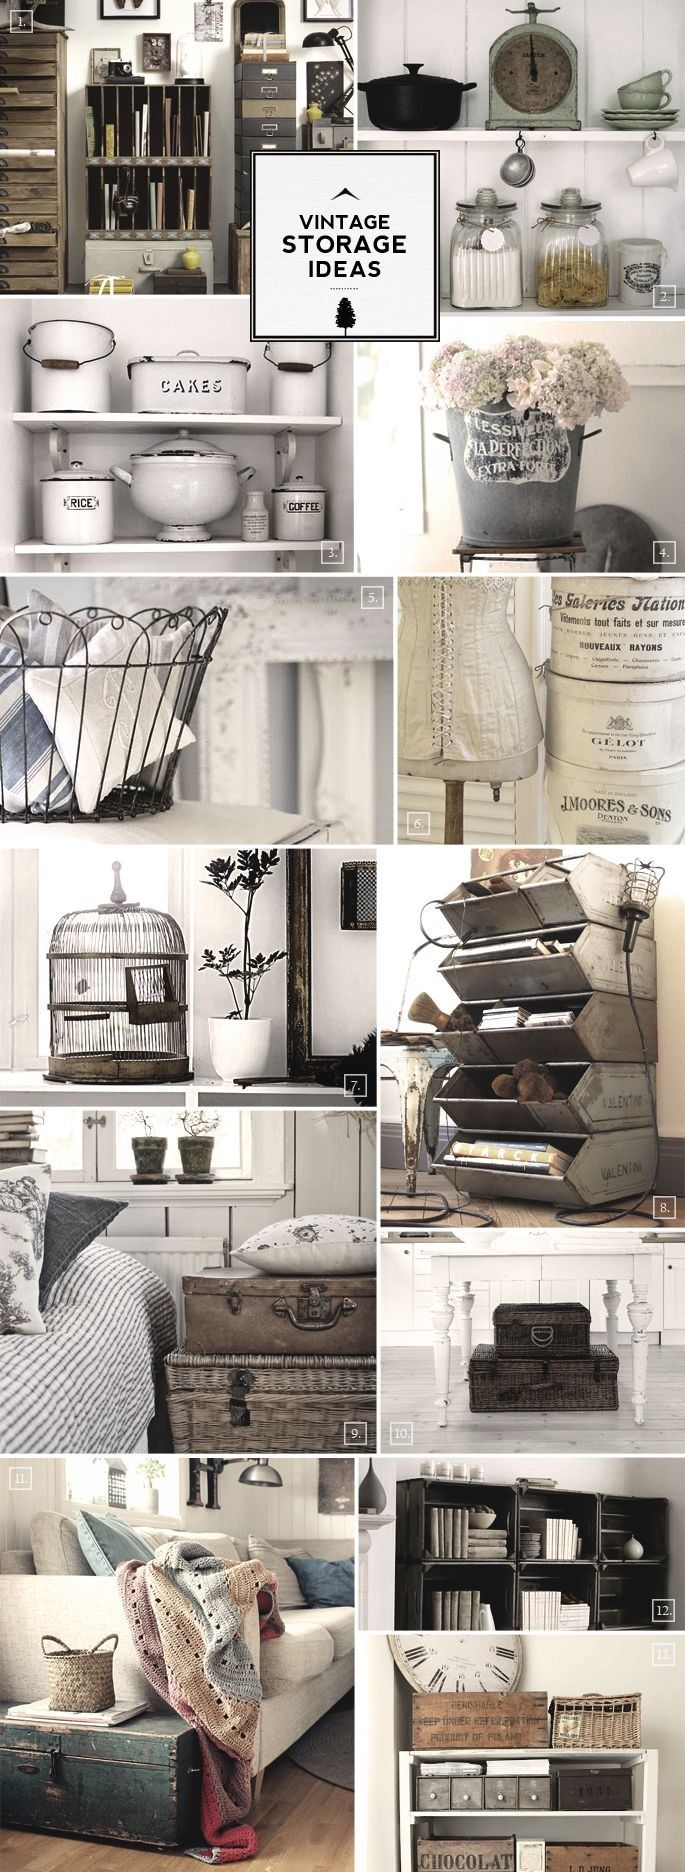 Vintage storage ideas. Enamelware, jars with lids, shelves, drawers, tins, corset on dress form, cast iron, scale, trunks, white table, striped bedding, plants in pots, wooden boxes, birdcage, books, baskets, afghan, sofa, sofa pillows